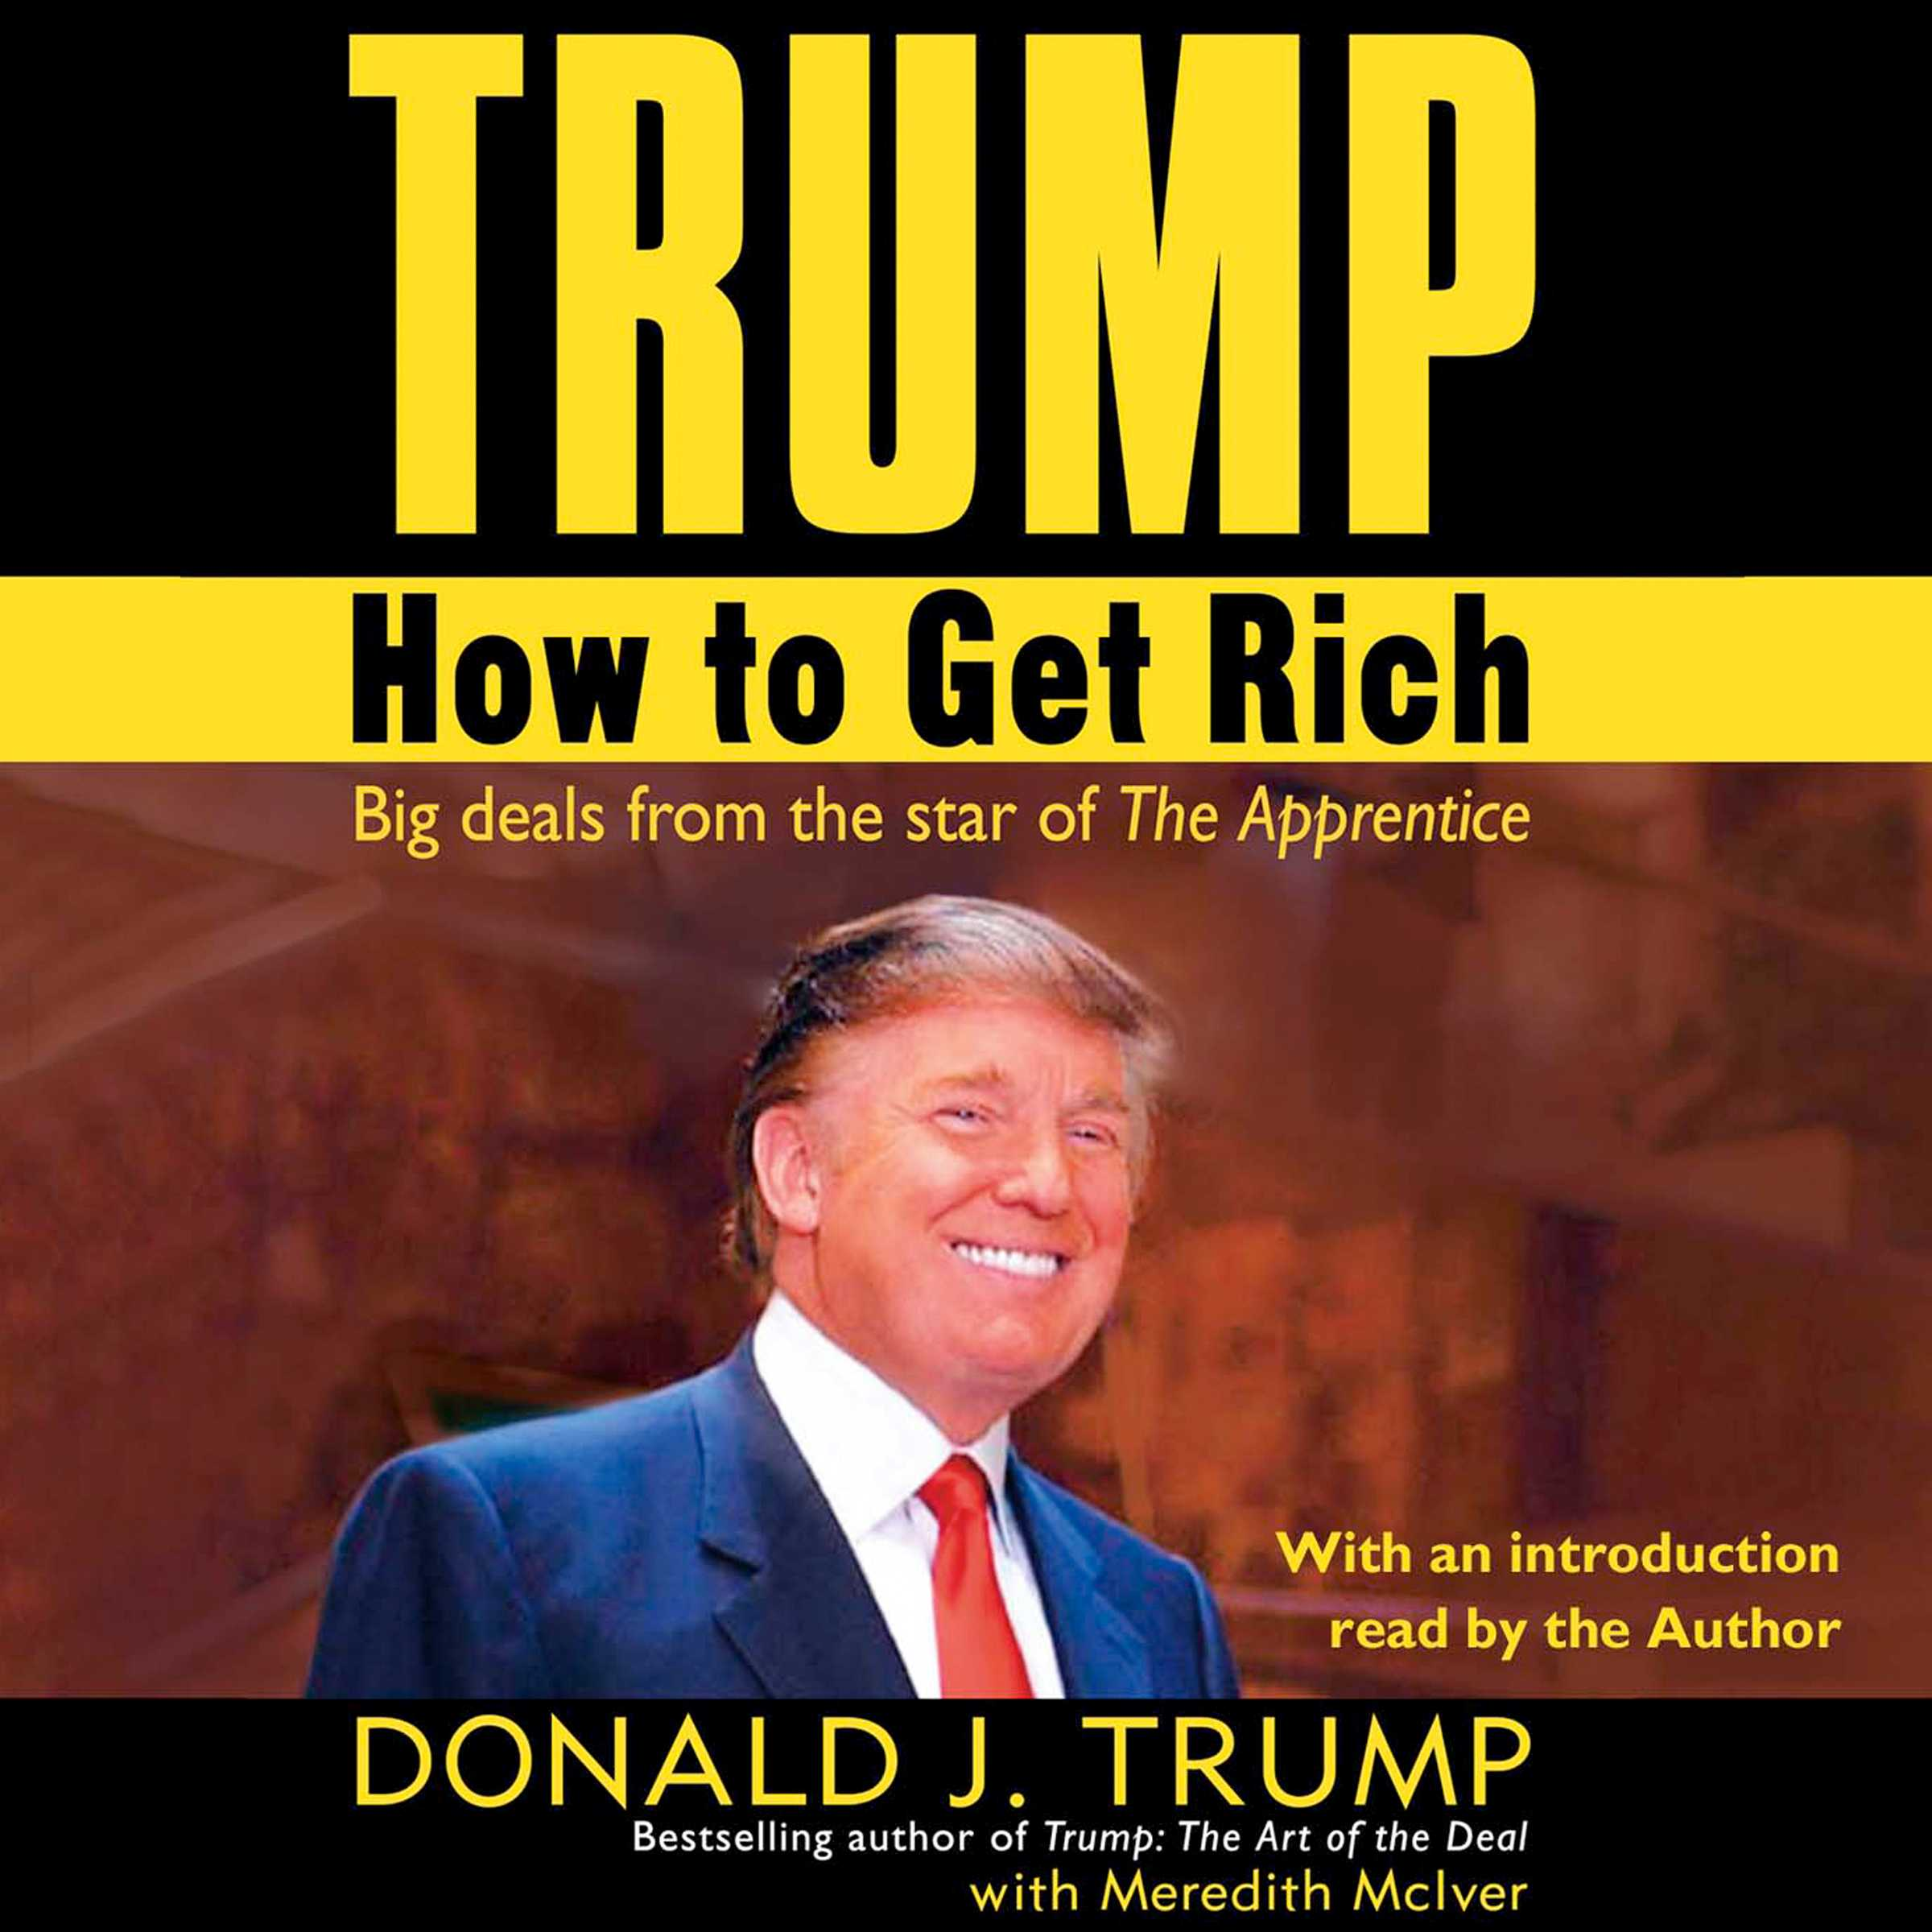 a biography of donald trump one of new yorks great business tycoons The similarities between donald trump and the  former new york mayor  there are non-political parallels between the fictional and real life tycoons.